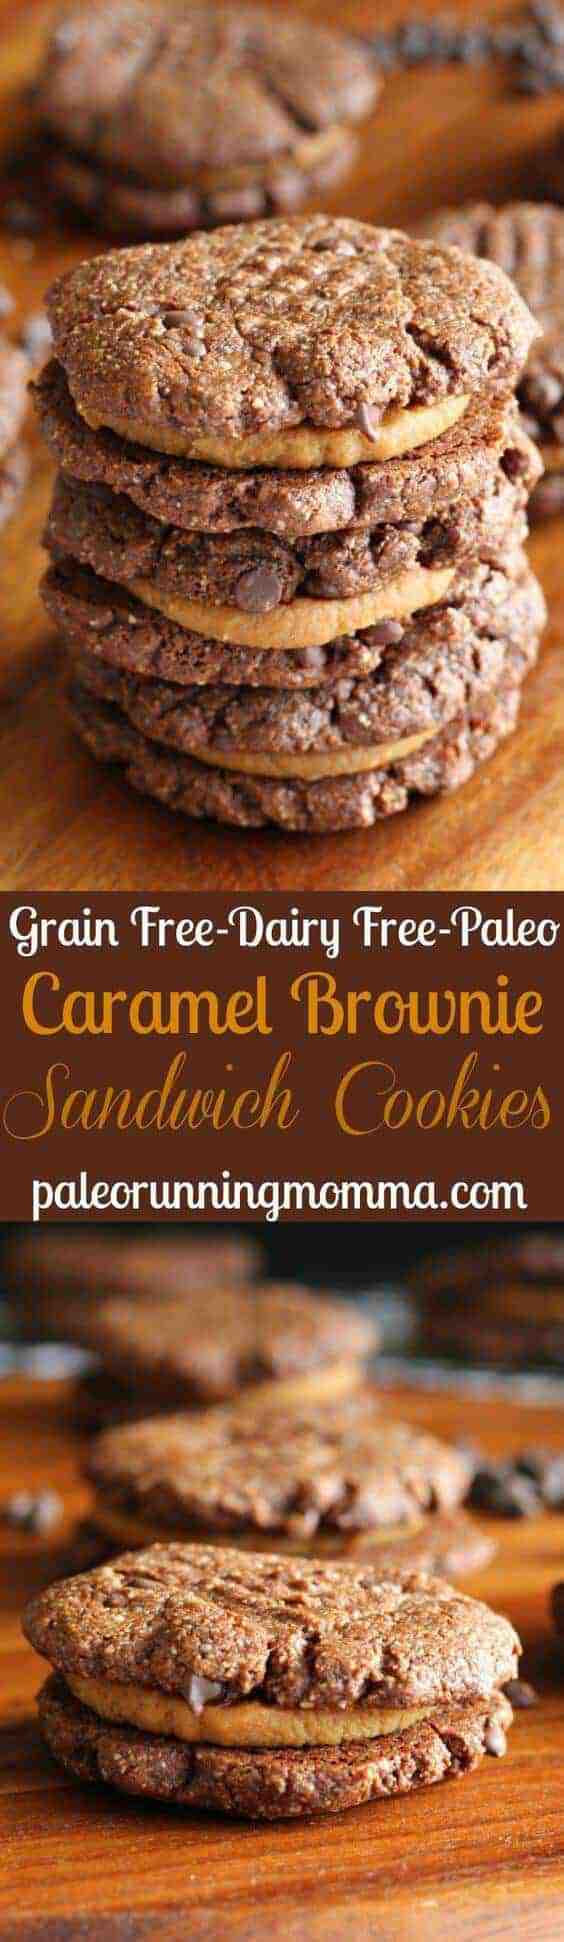 Paleo Caramel Brownie Sandwich Cookies